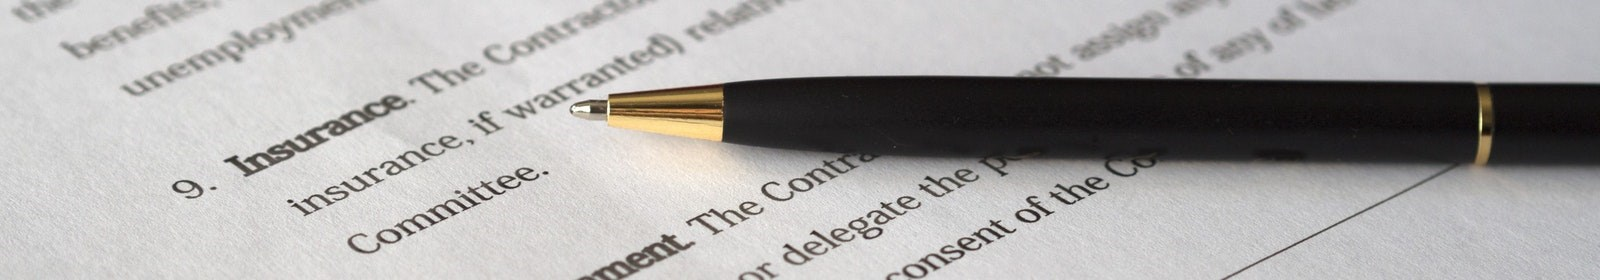 A template for lease agreements